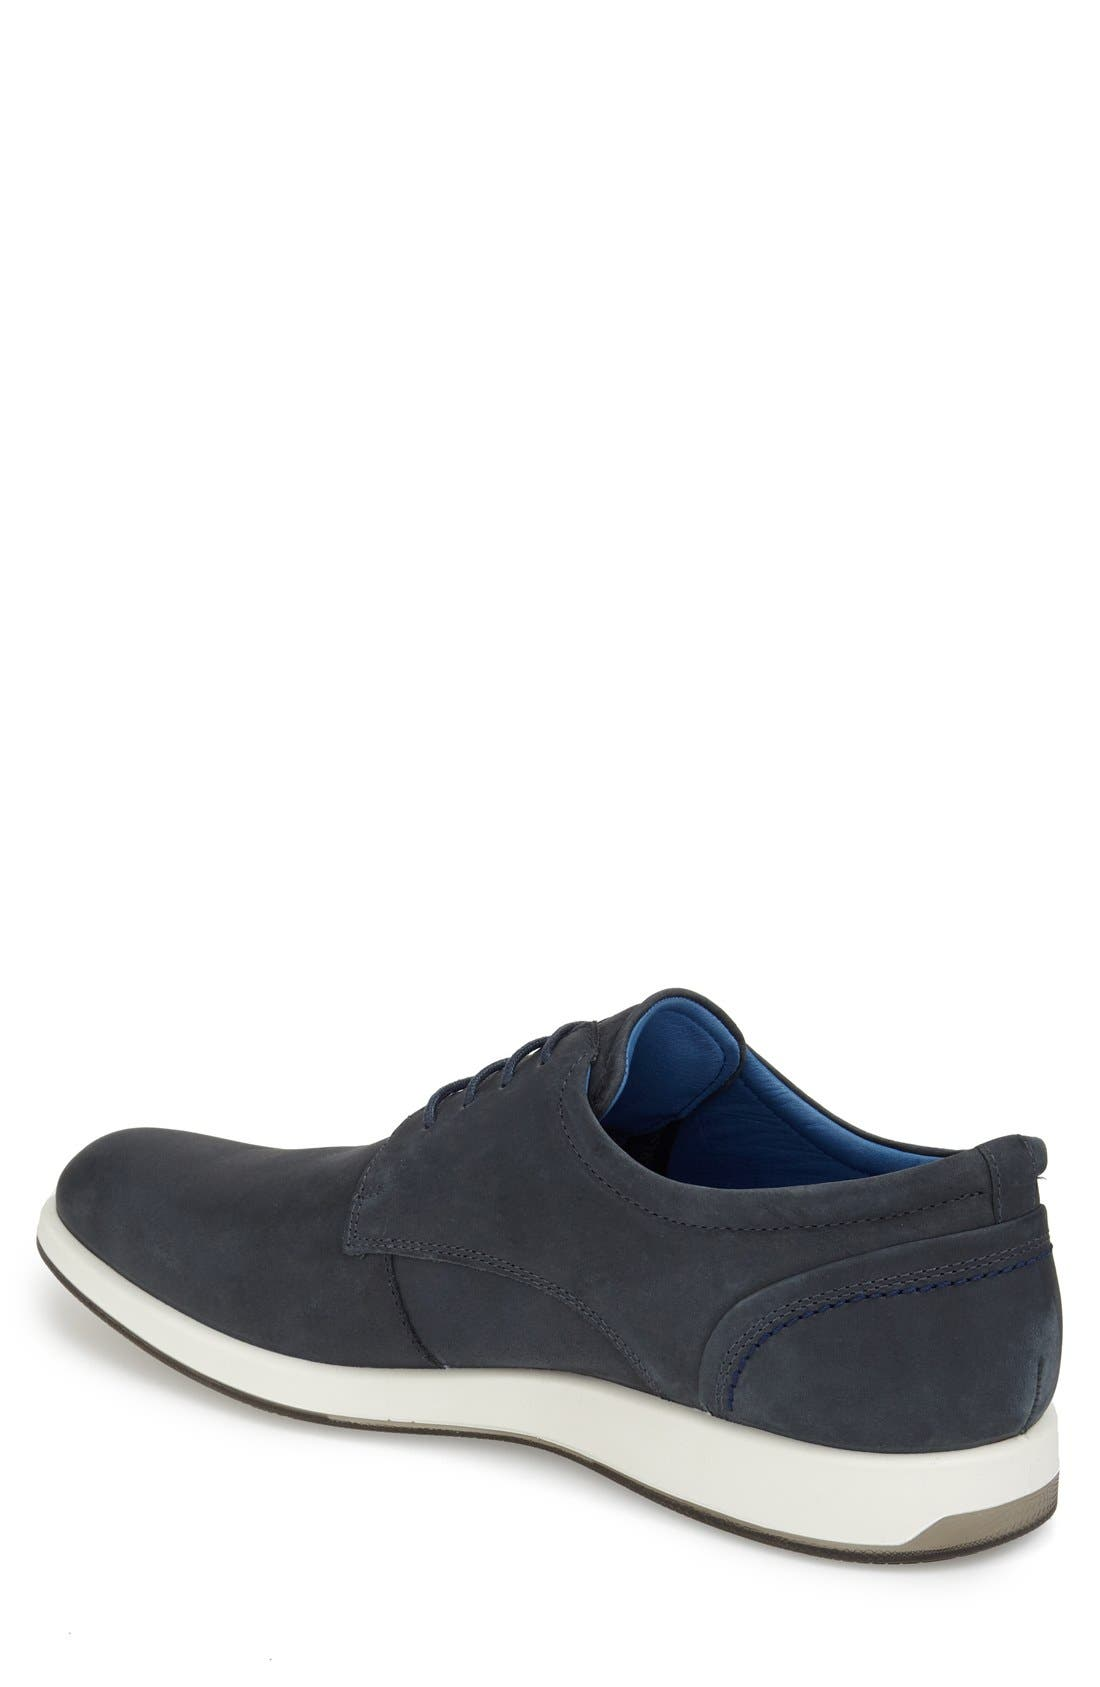 'Jared' Leather Oxford,                             Alternate thumbnail 2, color,                             Navy Leather